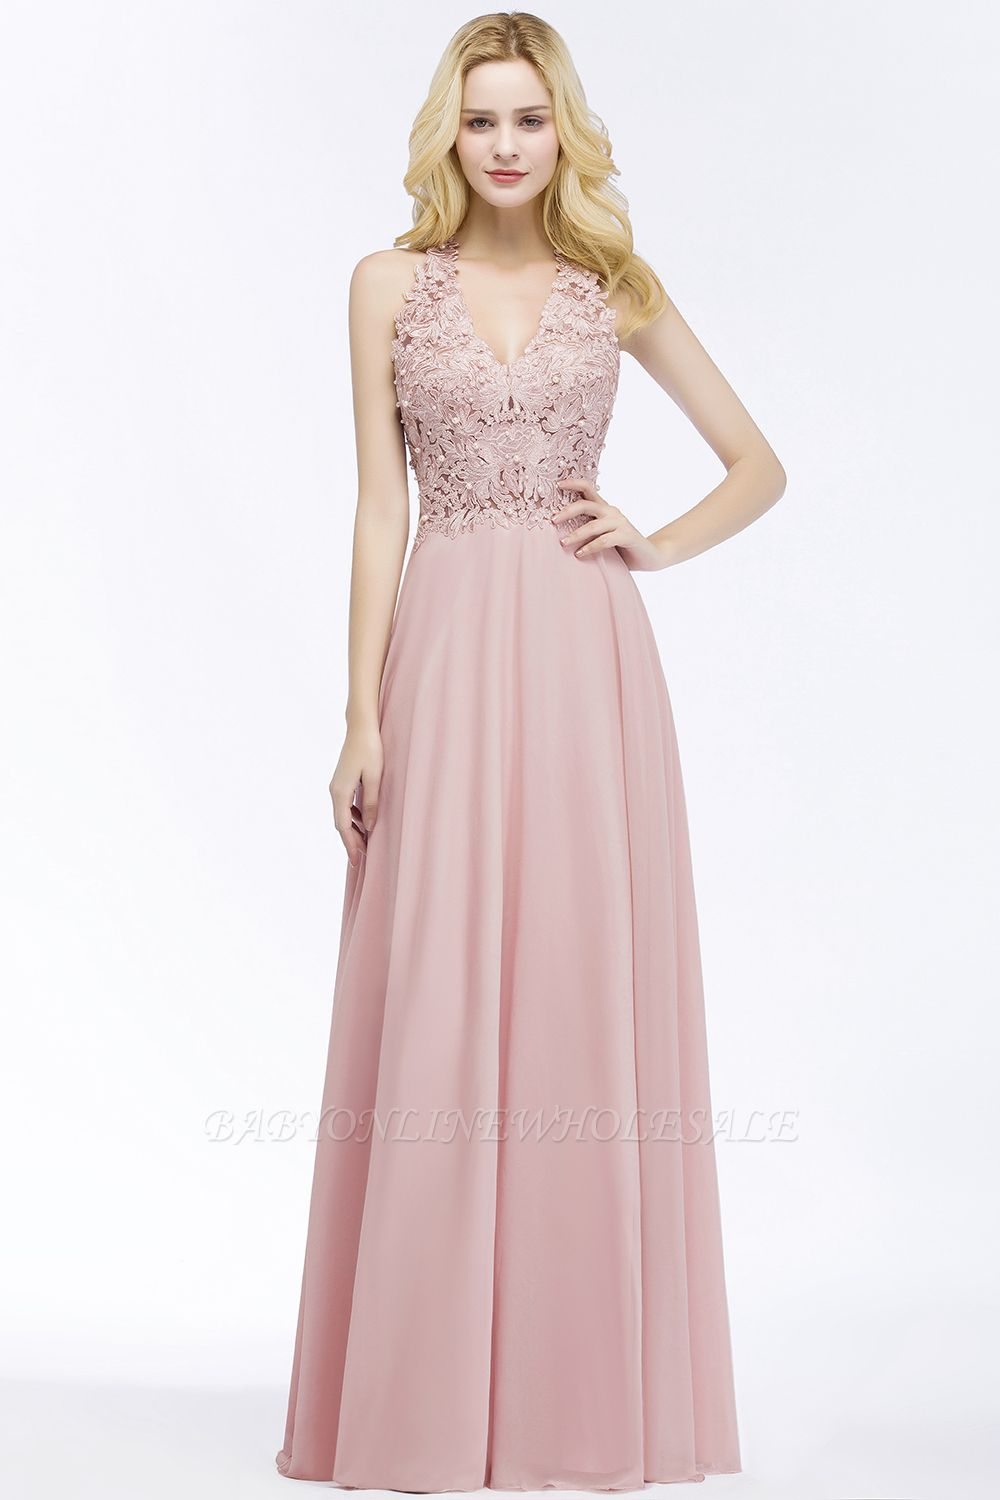 275efb5f955 All the trendy prom dresses are made purely by the experienced tailors